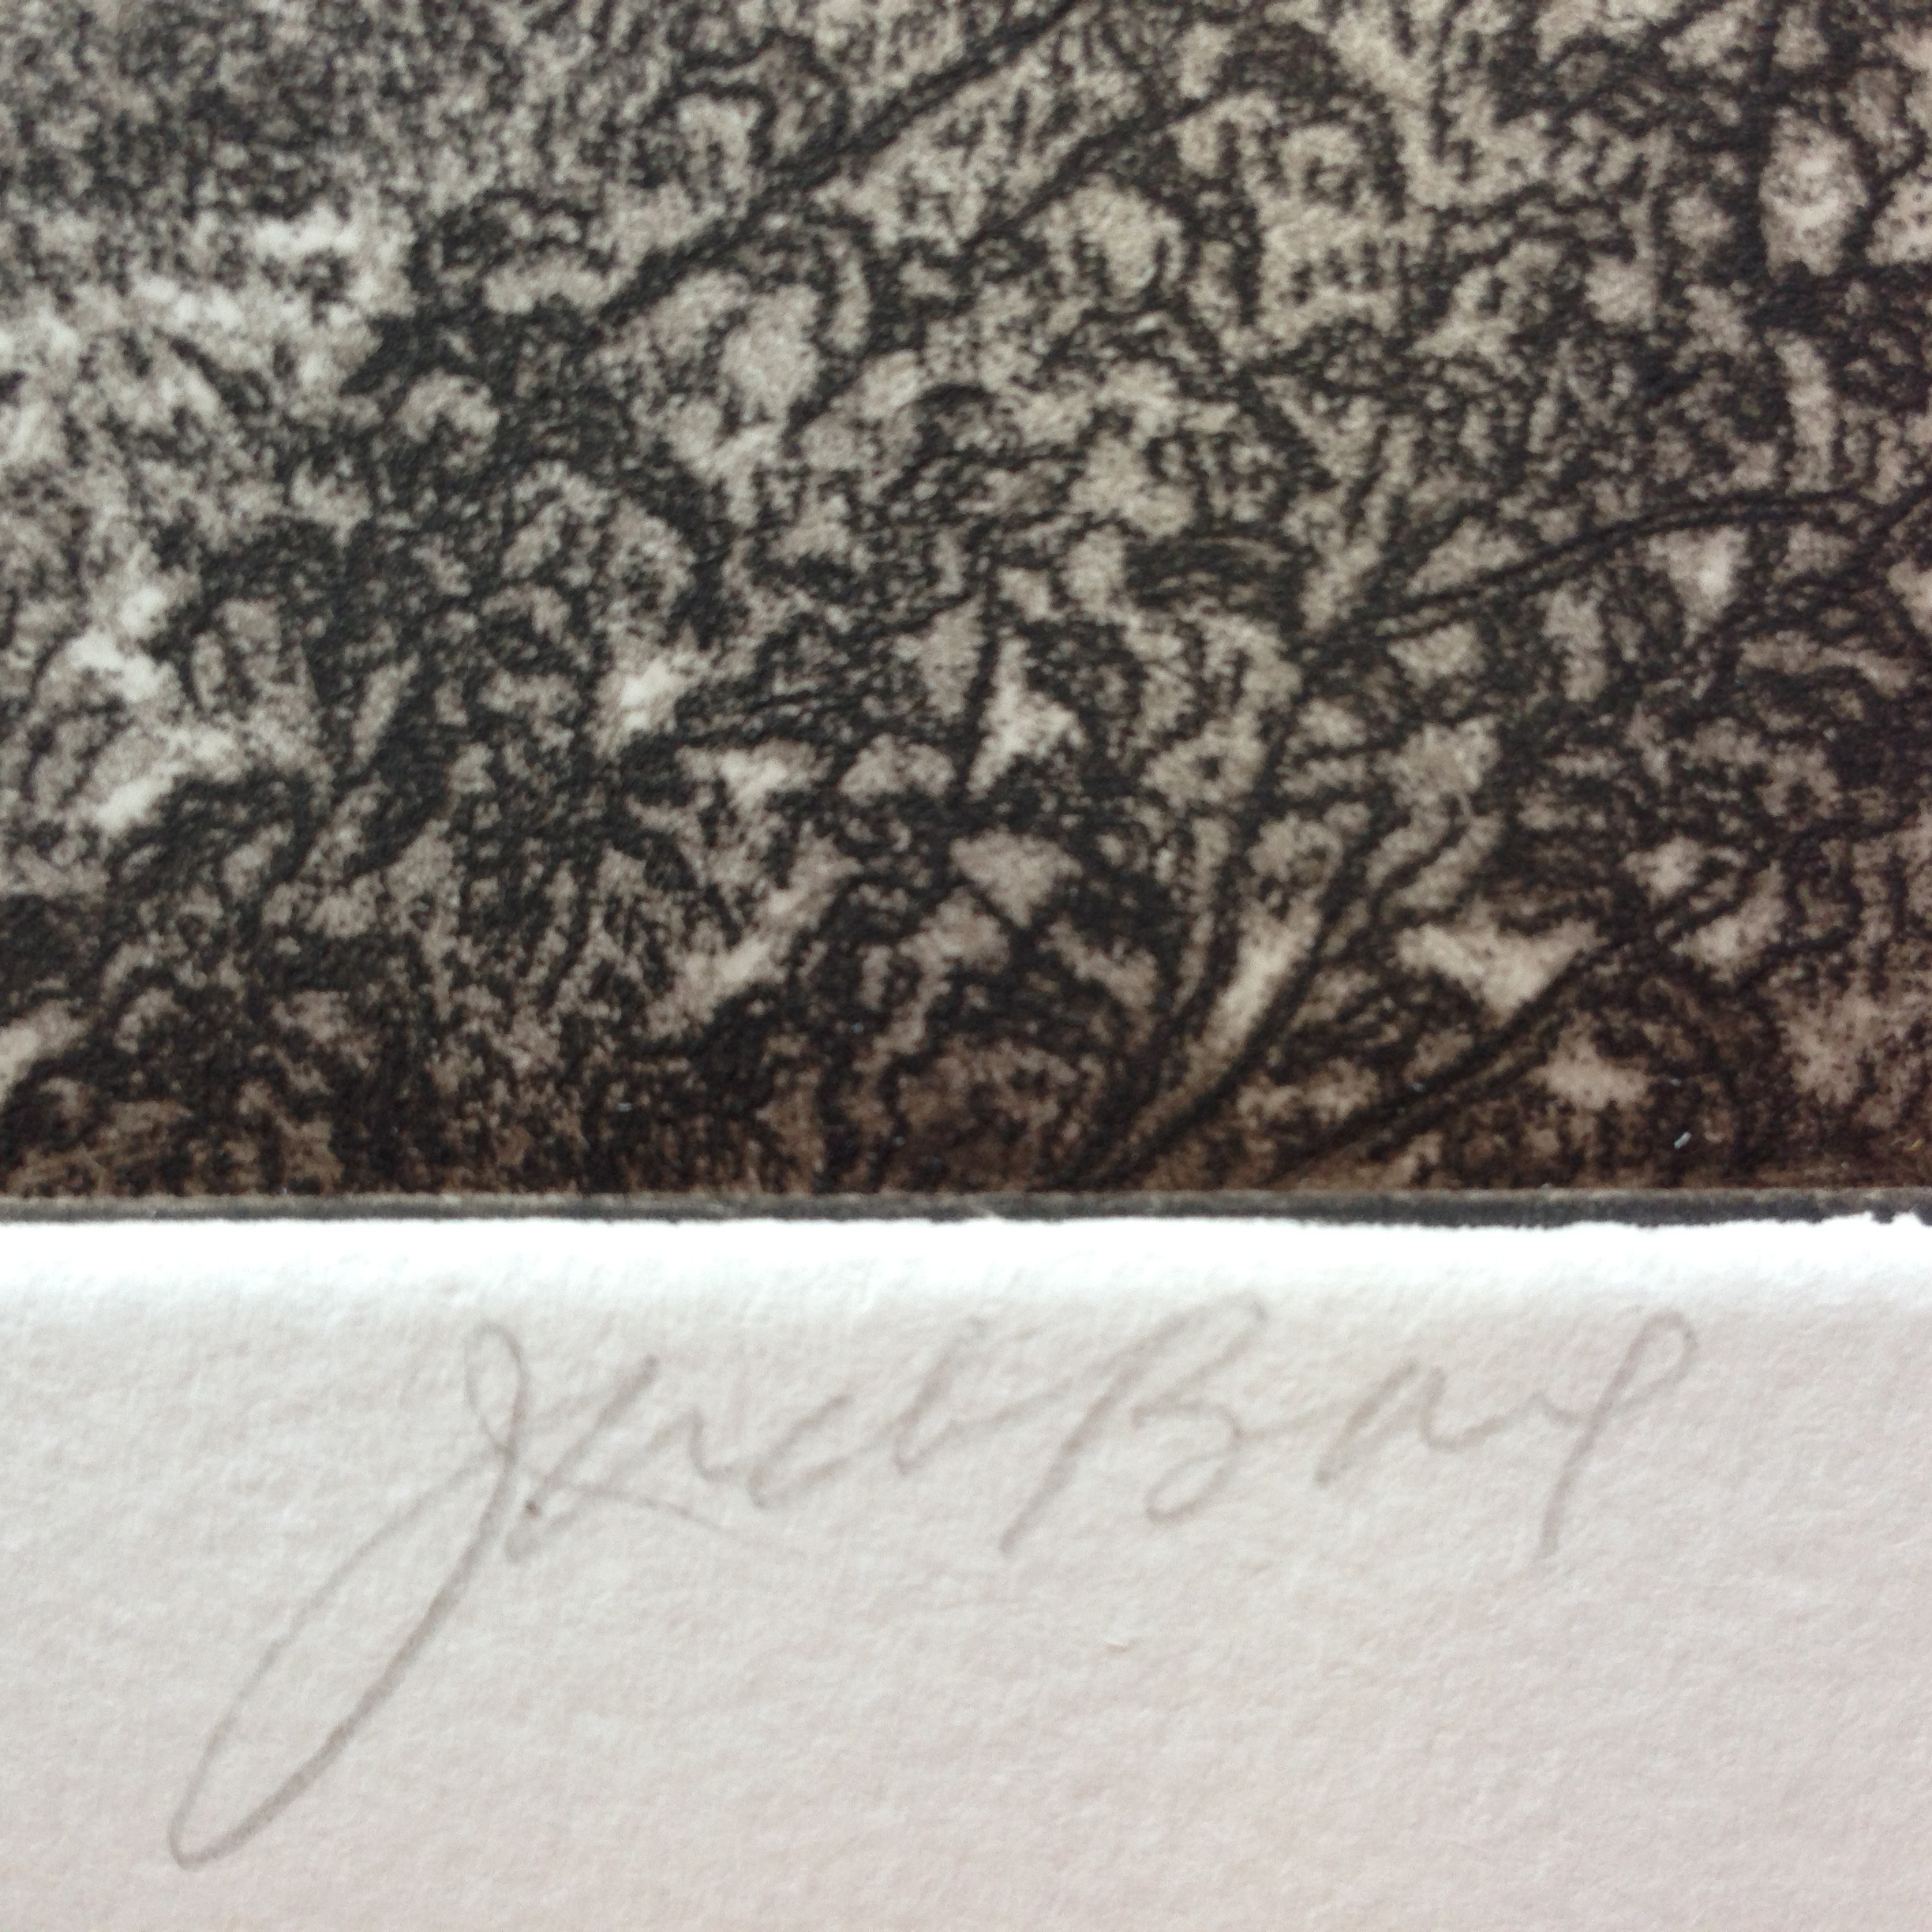 Jack's signature, lower right.